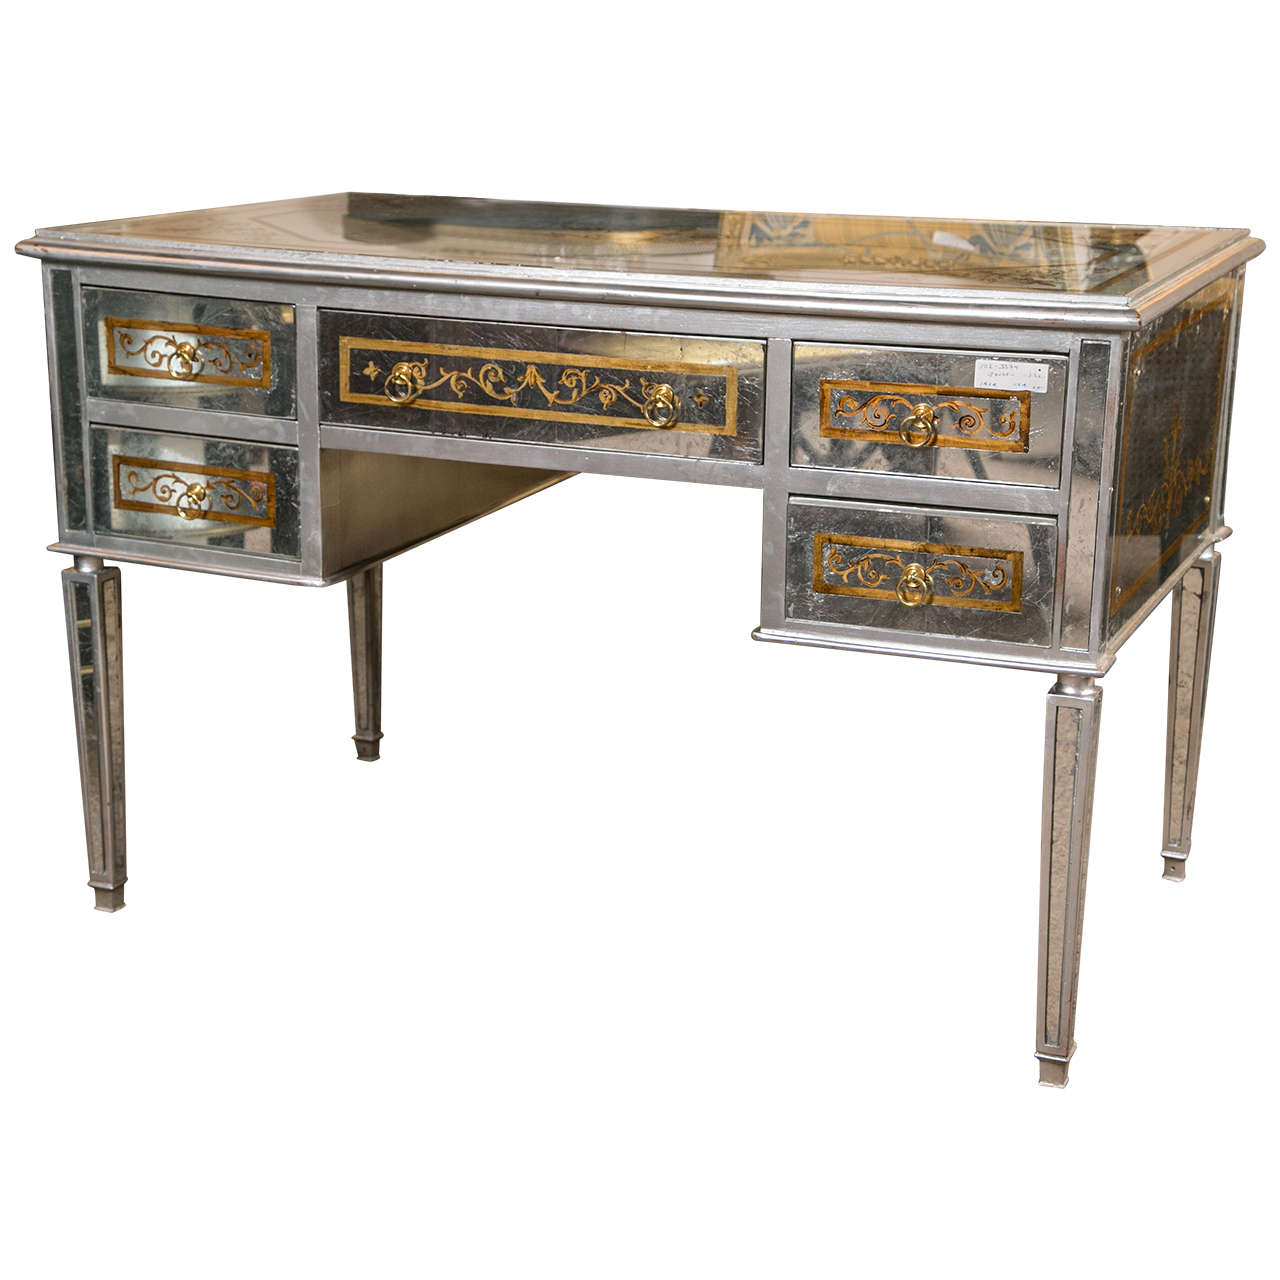 Maison Jansen Verre 201 Glomis 233 French Mirrored Desk Or